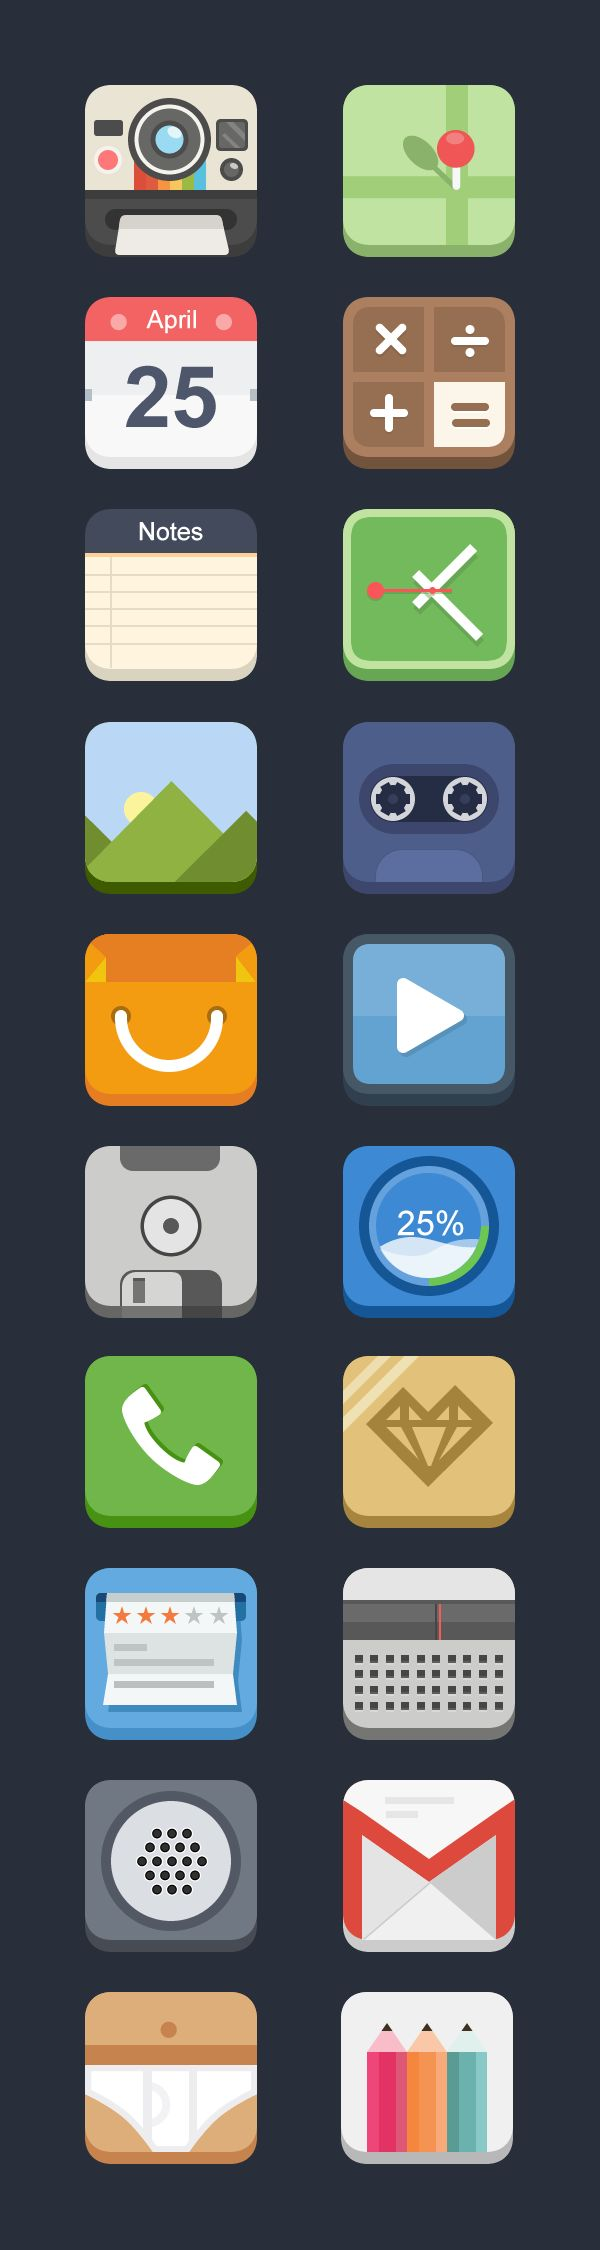 3D Flat Icons by Blues design, via Behance  http://www.corsowebdesignerfreelance.it